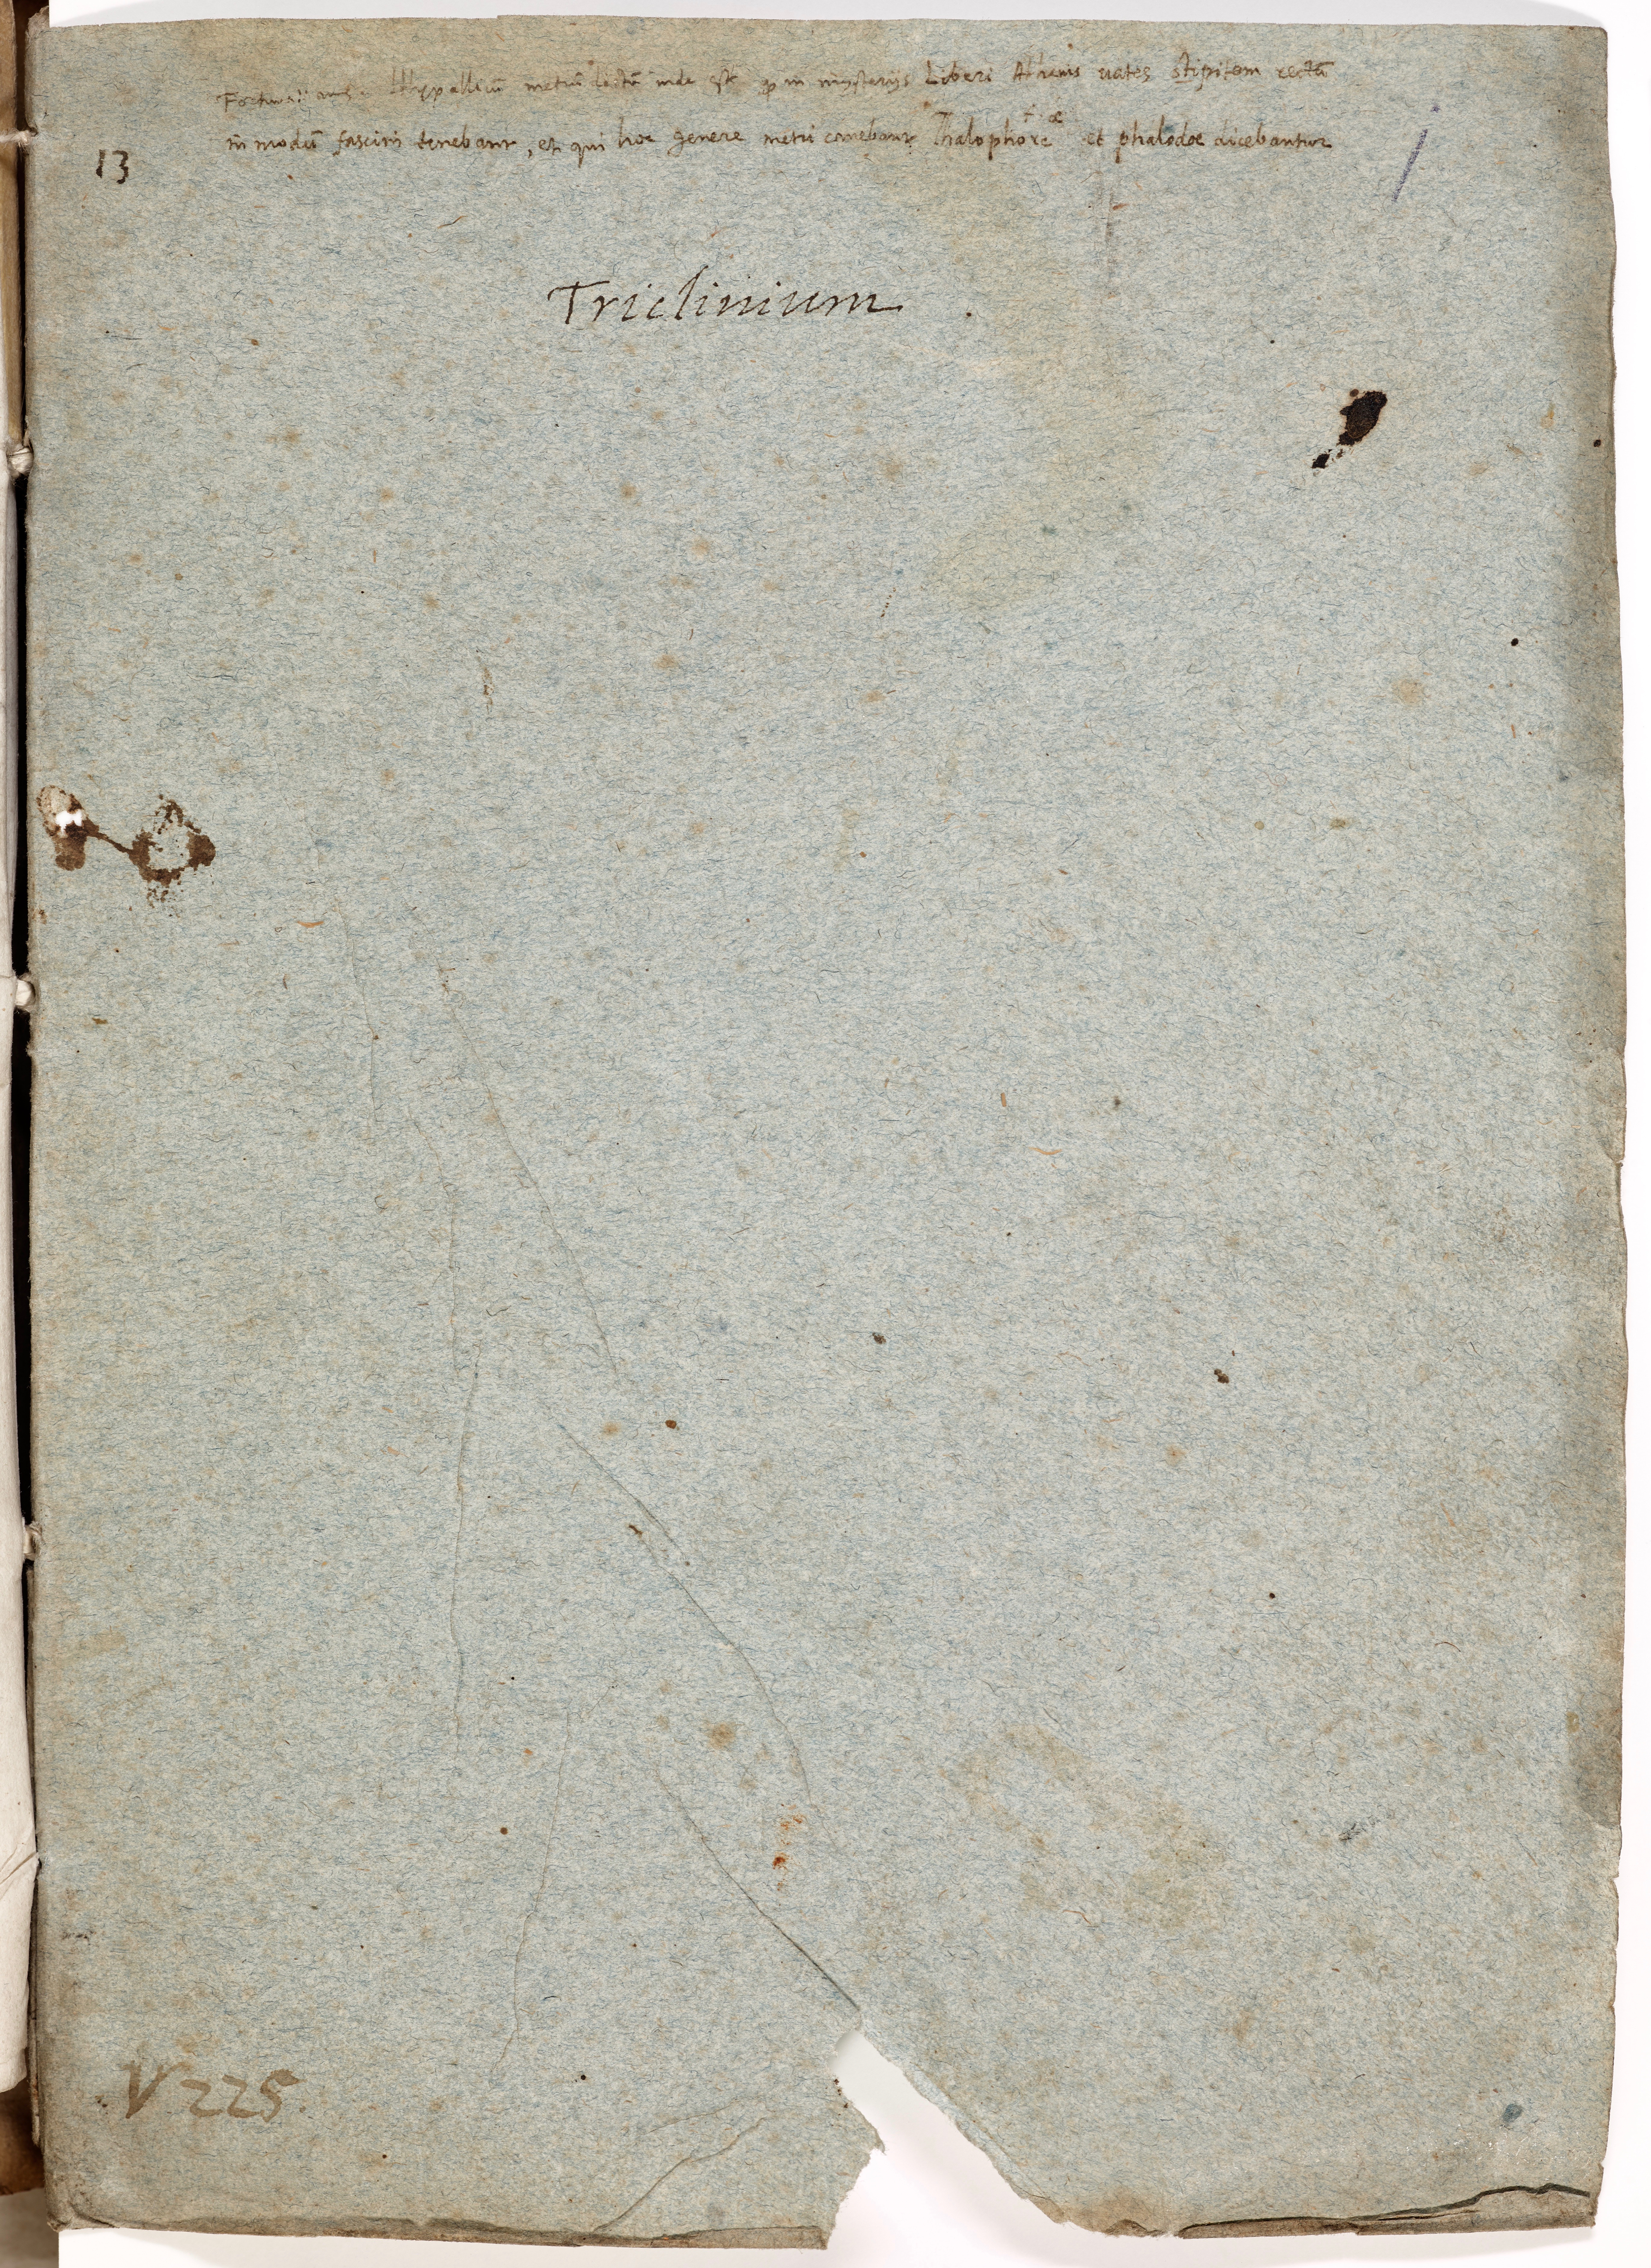 AM 828 4to, f. 1r